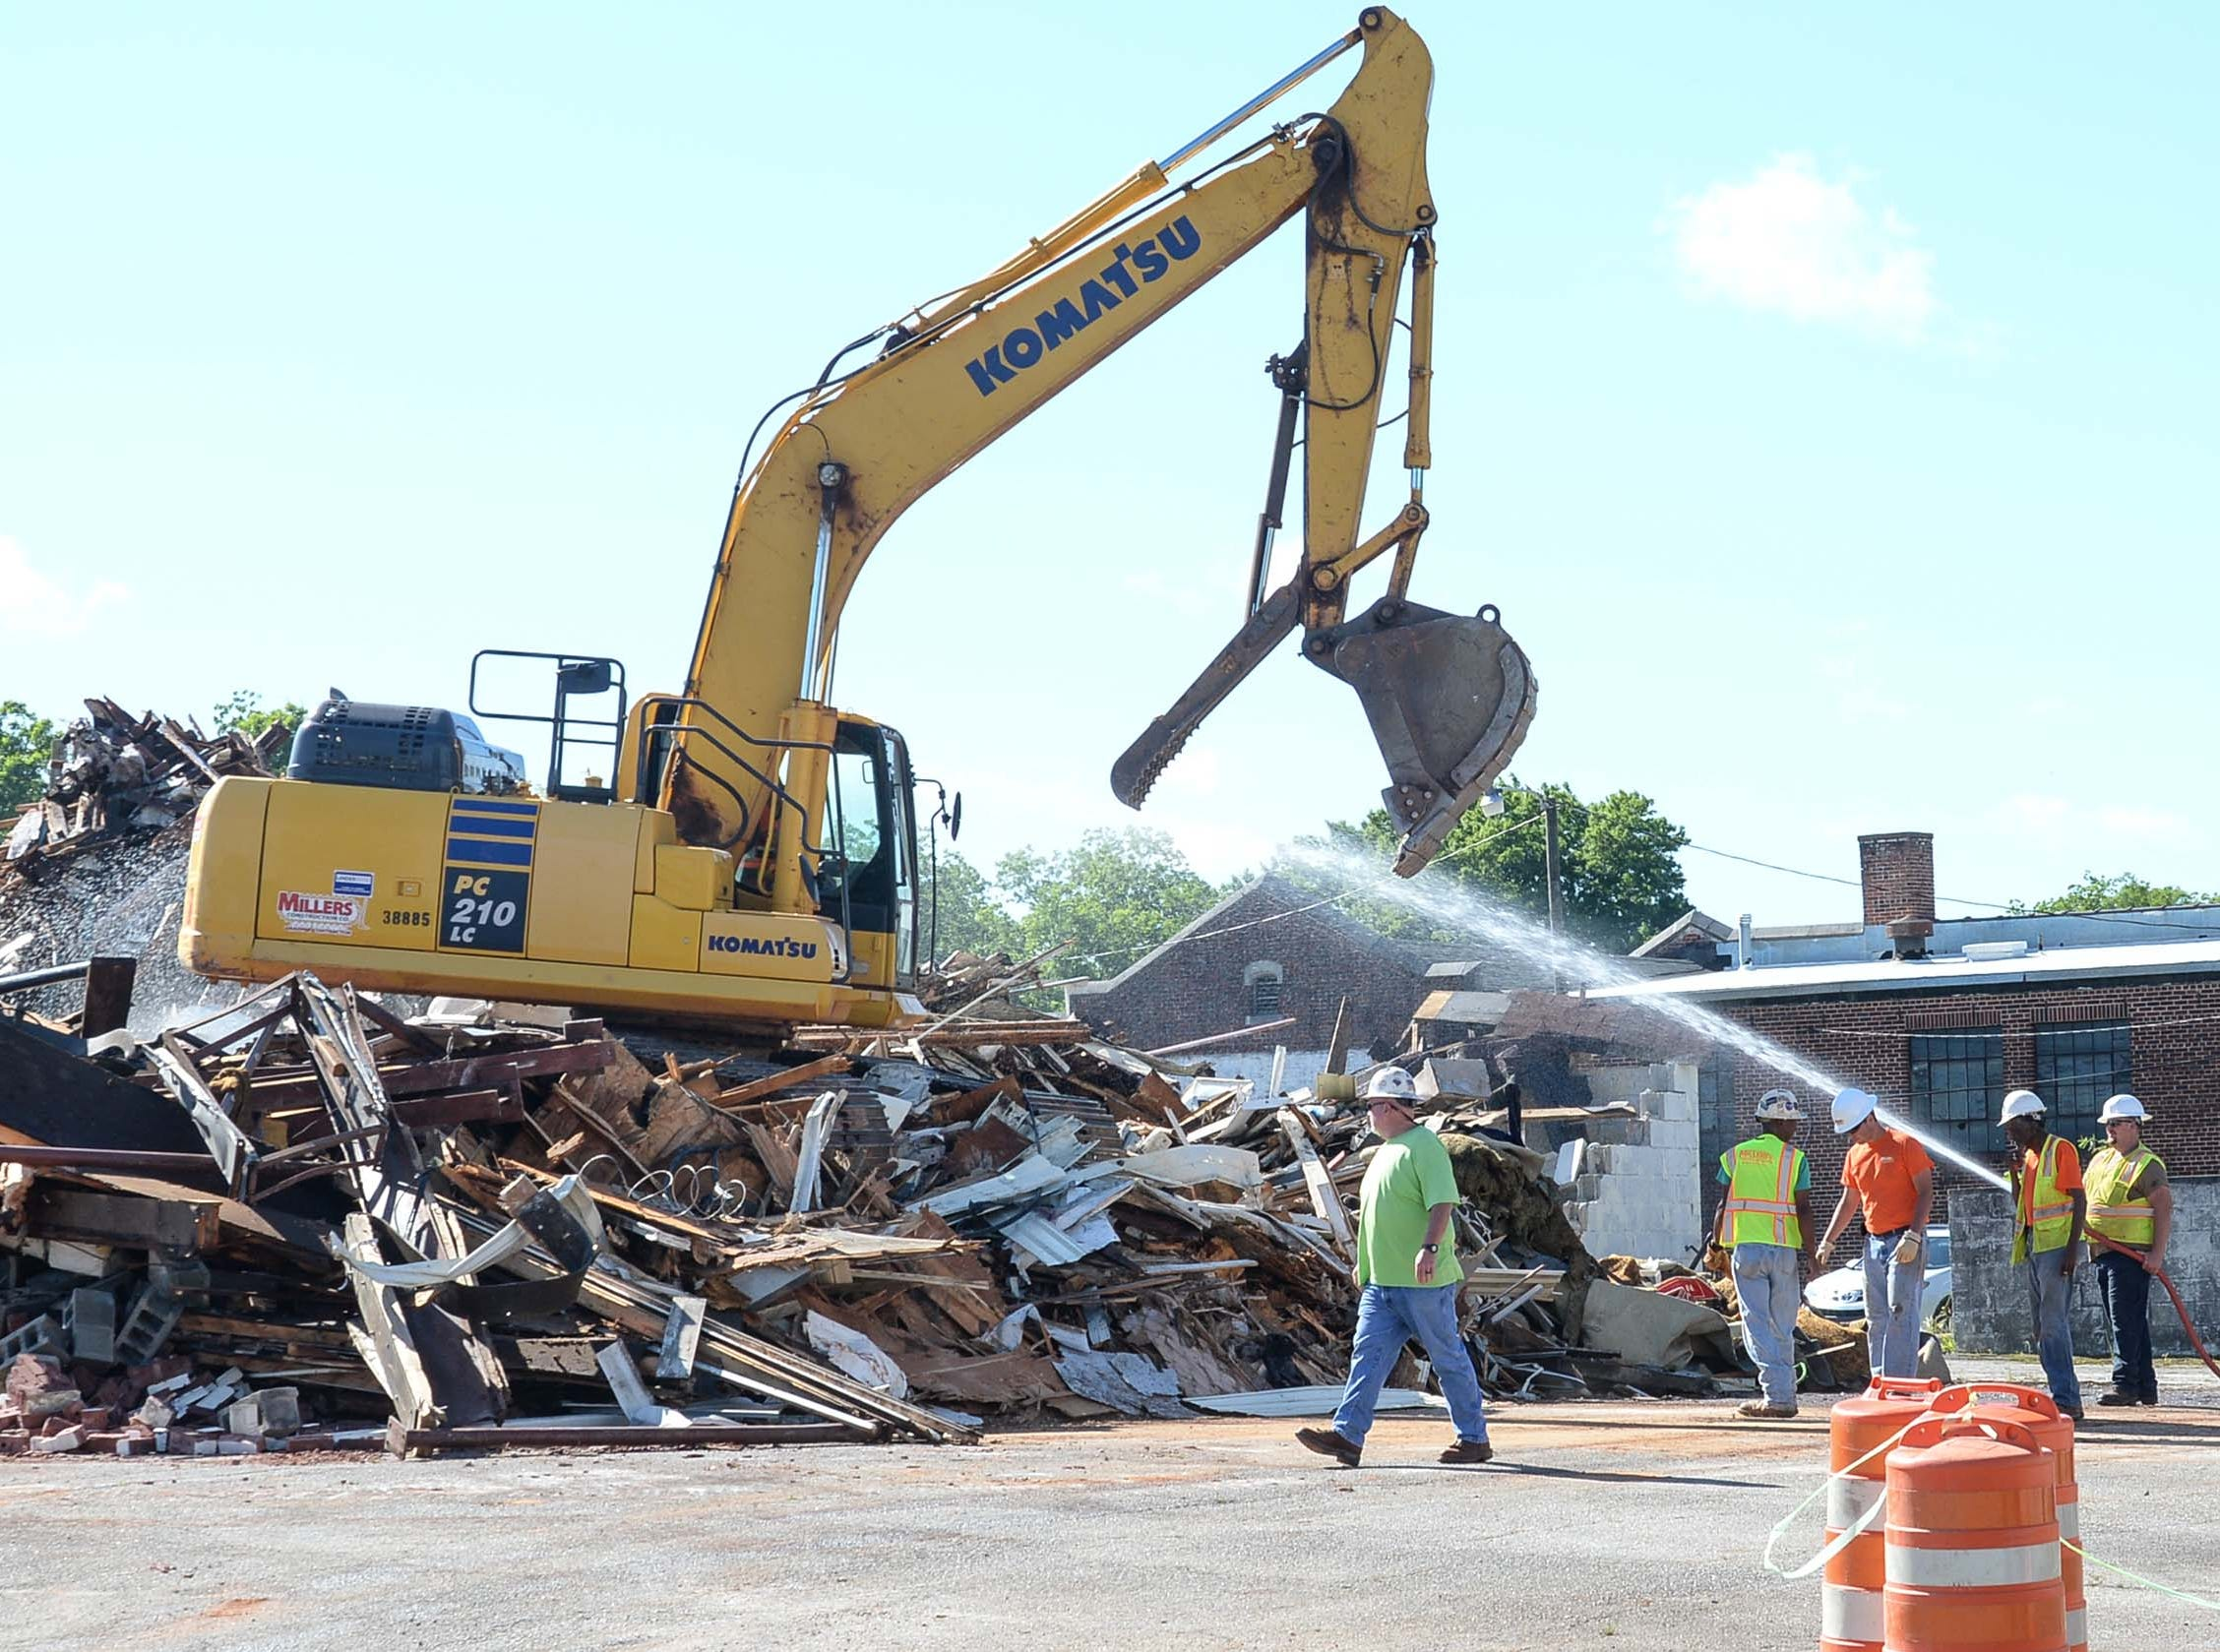 A worker from Miller Construction of Anderson sprays down dust from debris during demolition of the 600 South Main Street building Monday in Anderson. The building was used as a city planning and codes for years after McDougalds Funeral Home occupied it from 1934 to 1968 as their South Chapel.